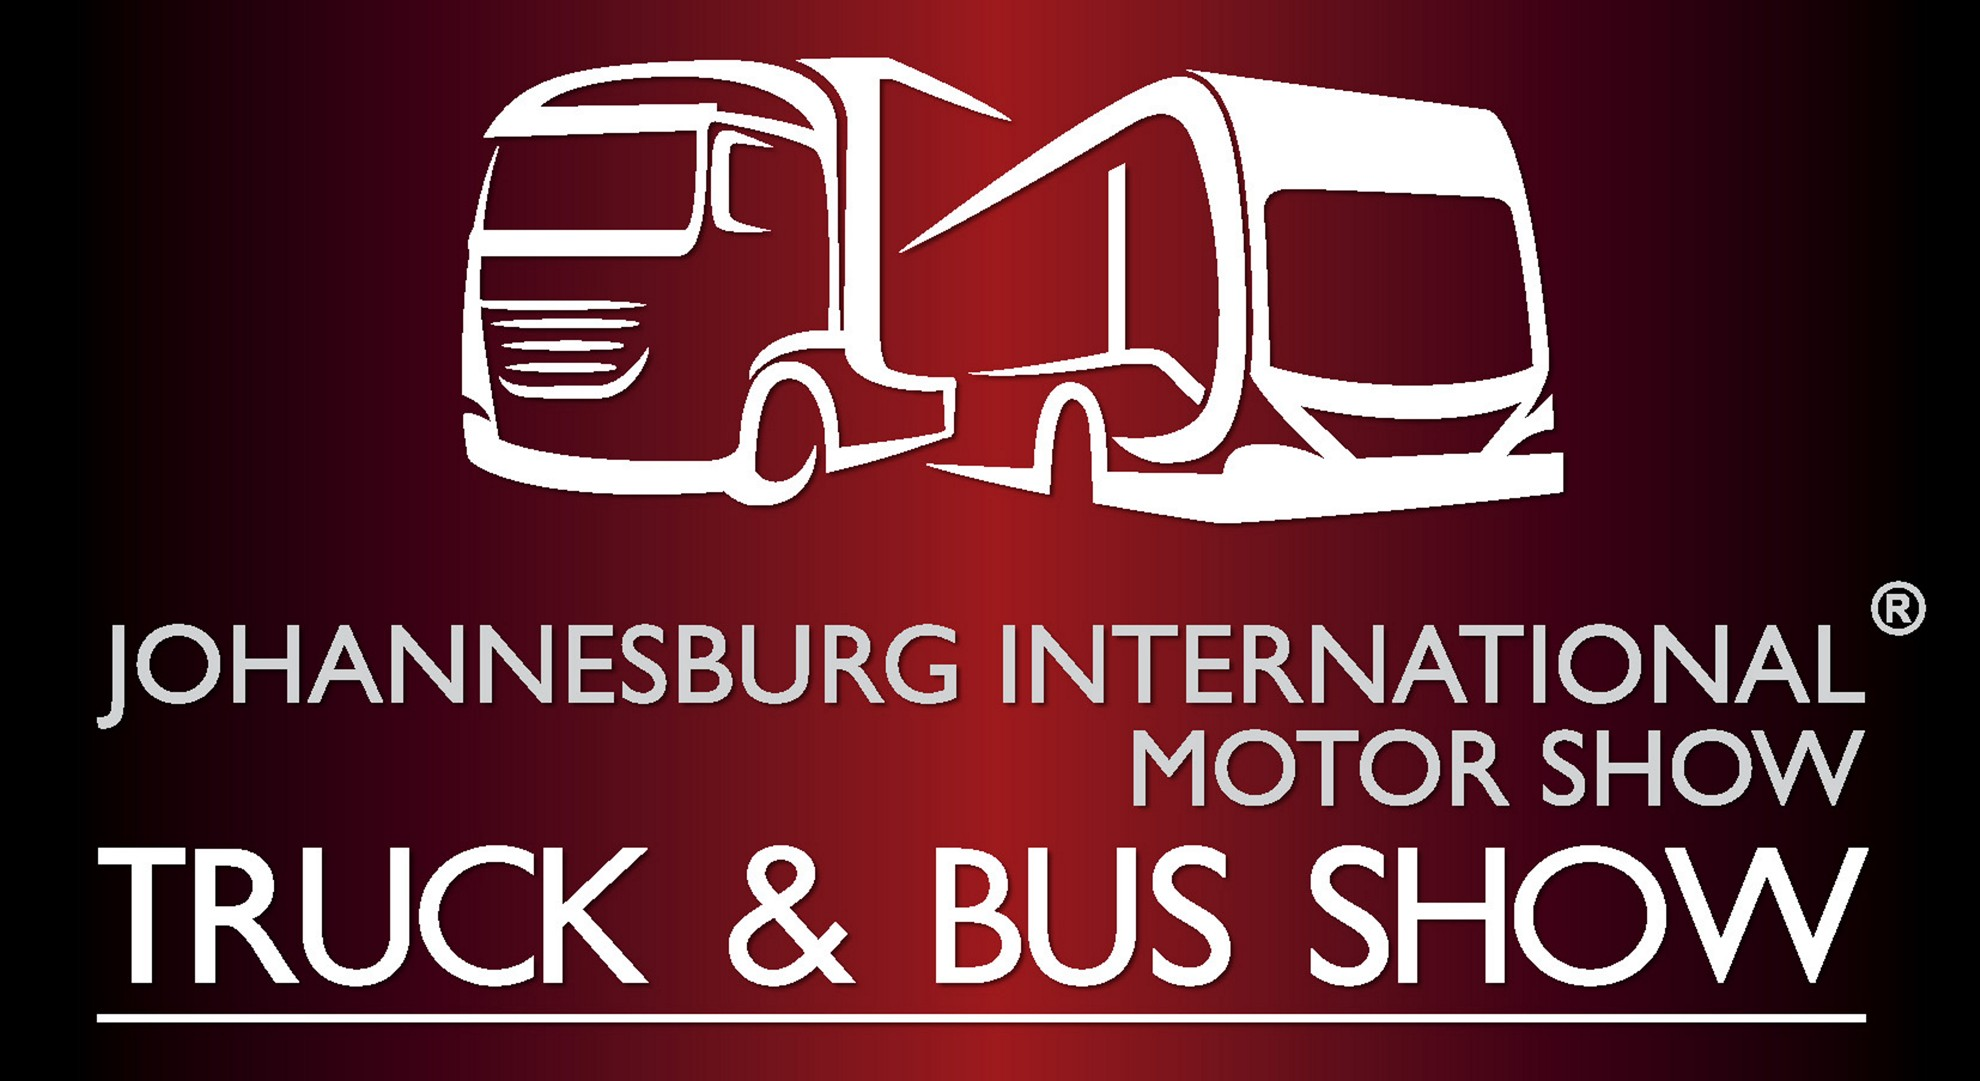 Johannesburg_Truck_and_Bus_Show